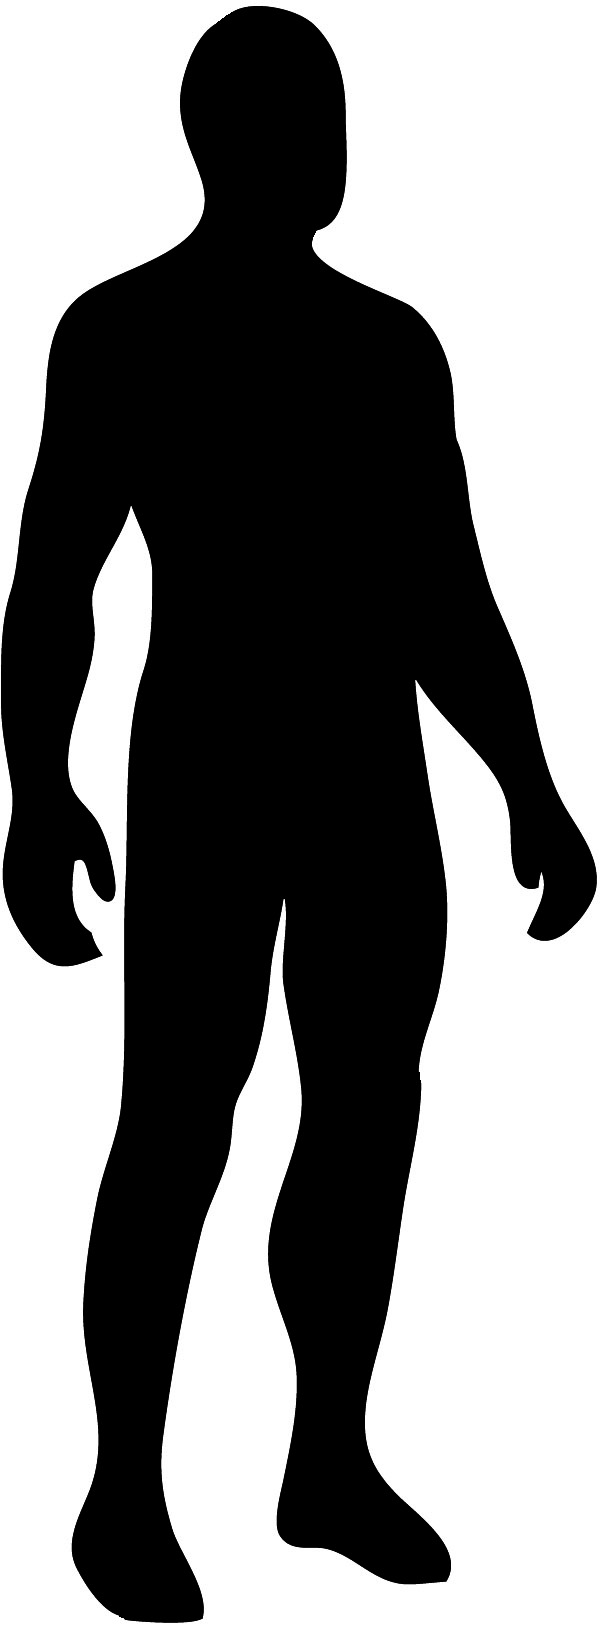 Male silhouette in black